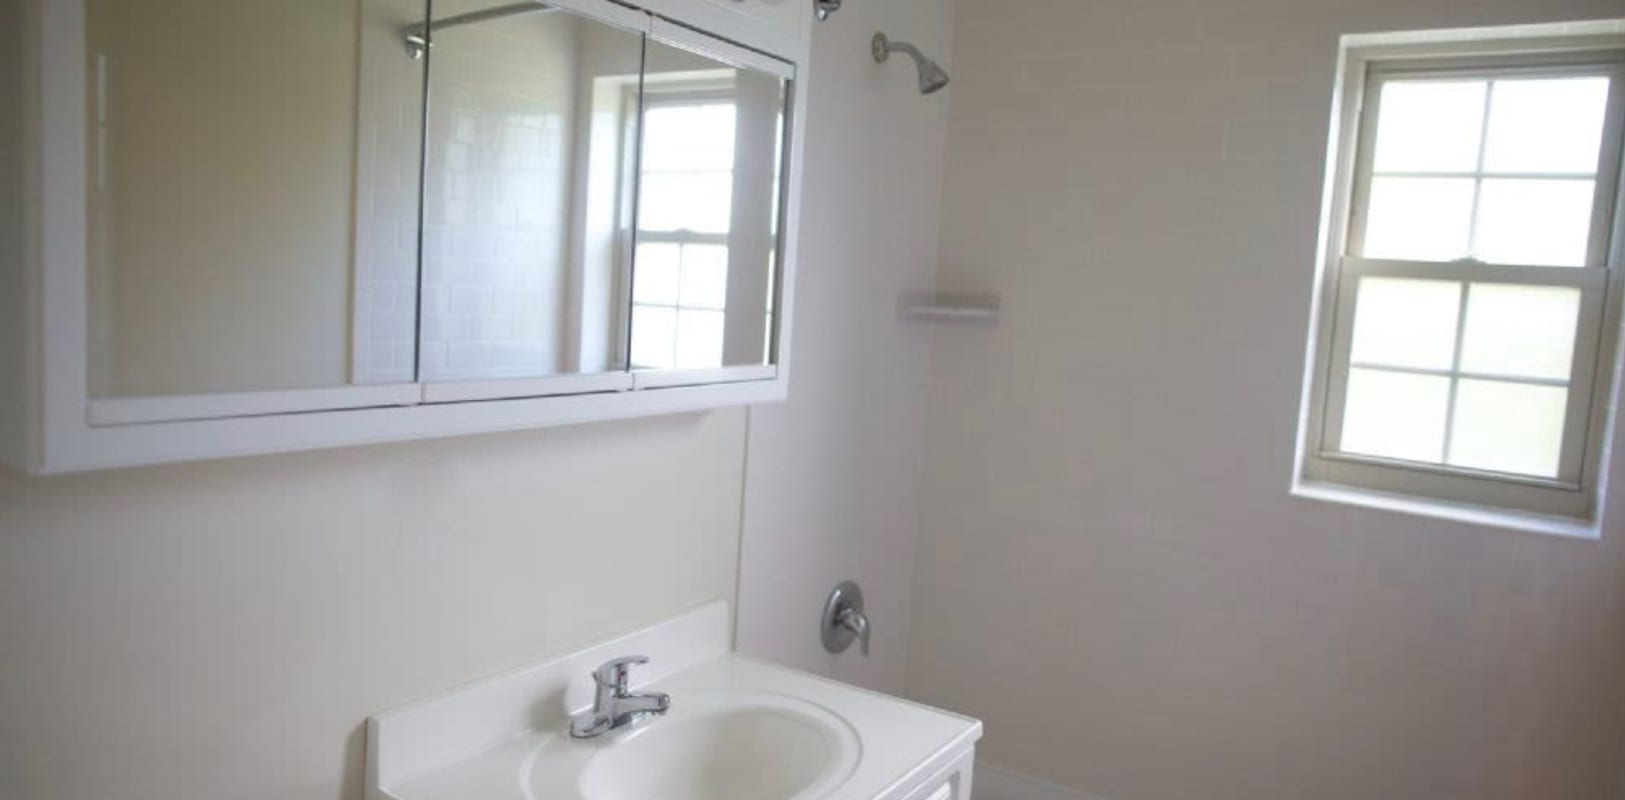 Bathroom at Sharon Arms Apartments in Robbinsville, New Jersey